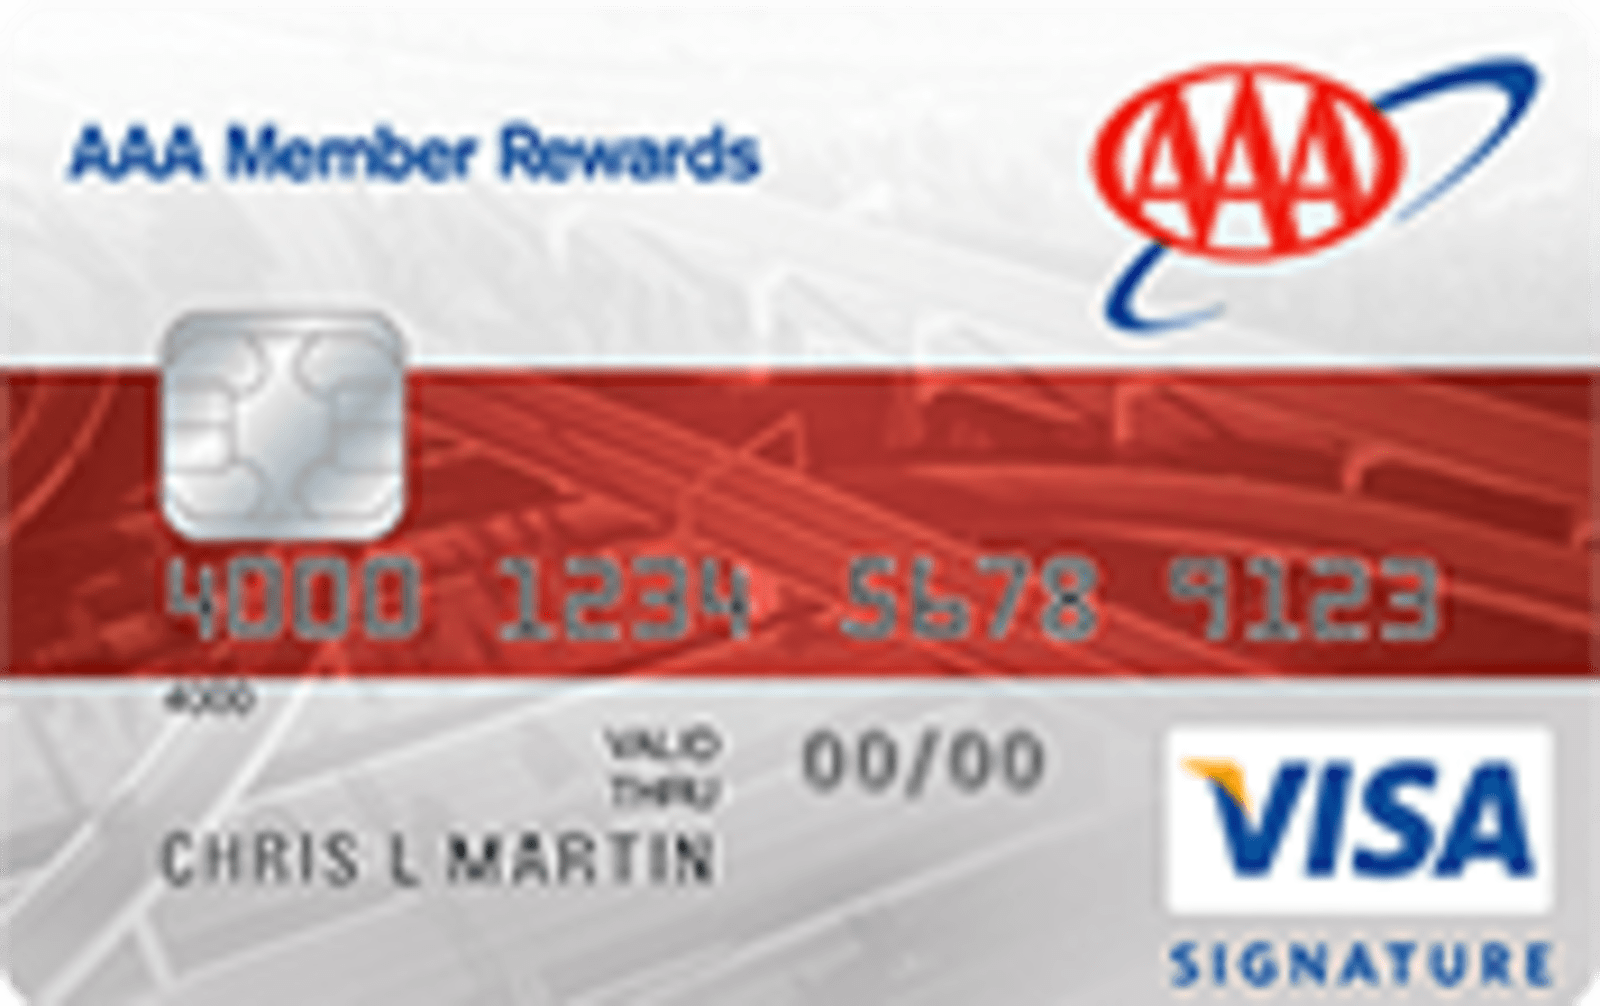 AAA Member Rewards Credit Card: Is It a Good Cash Back Card